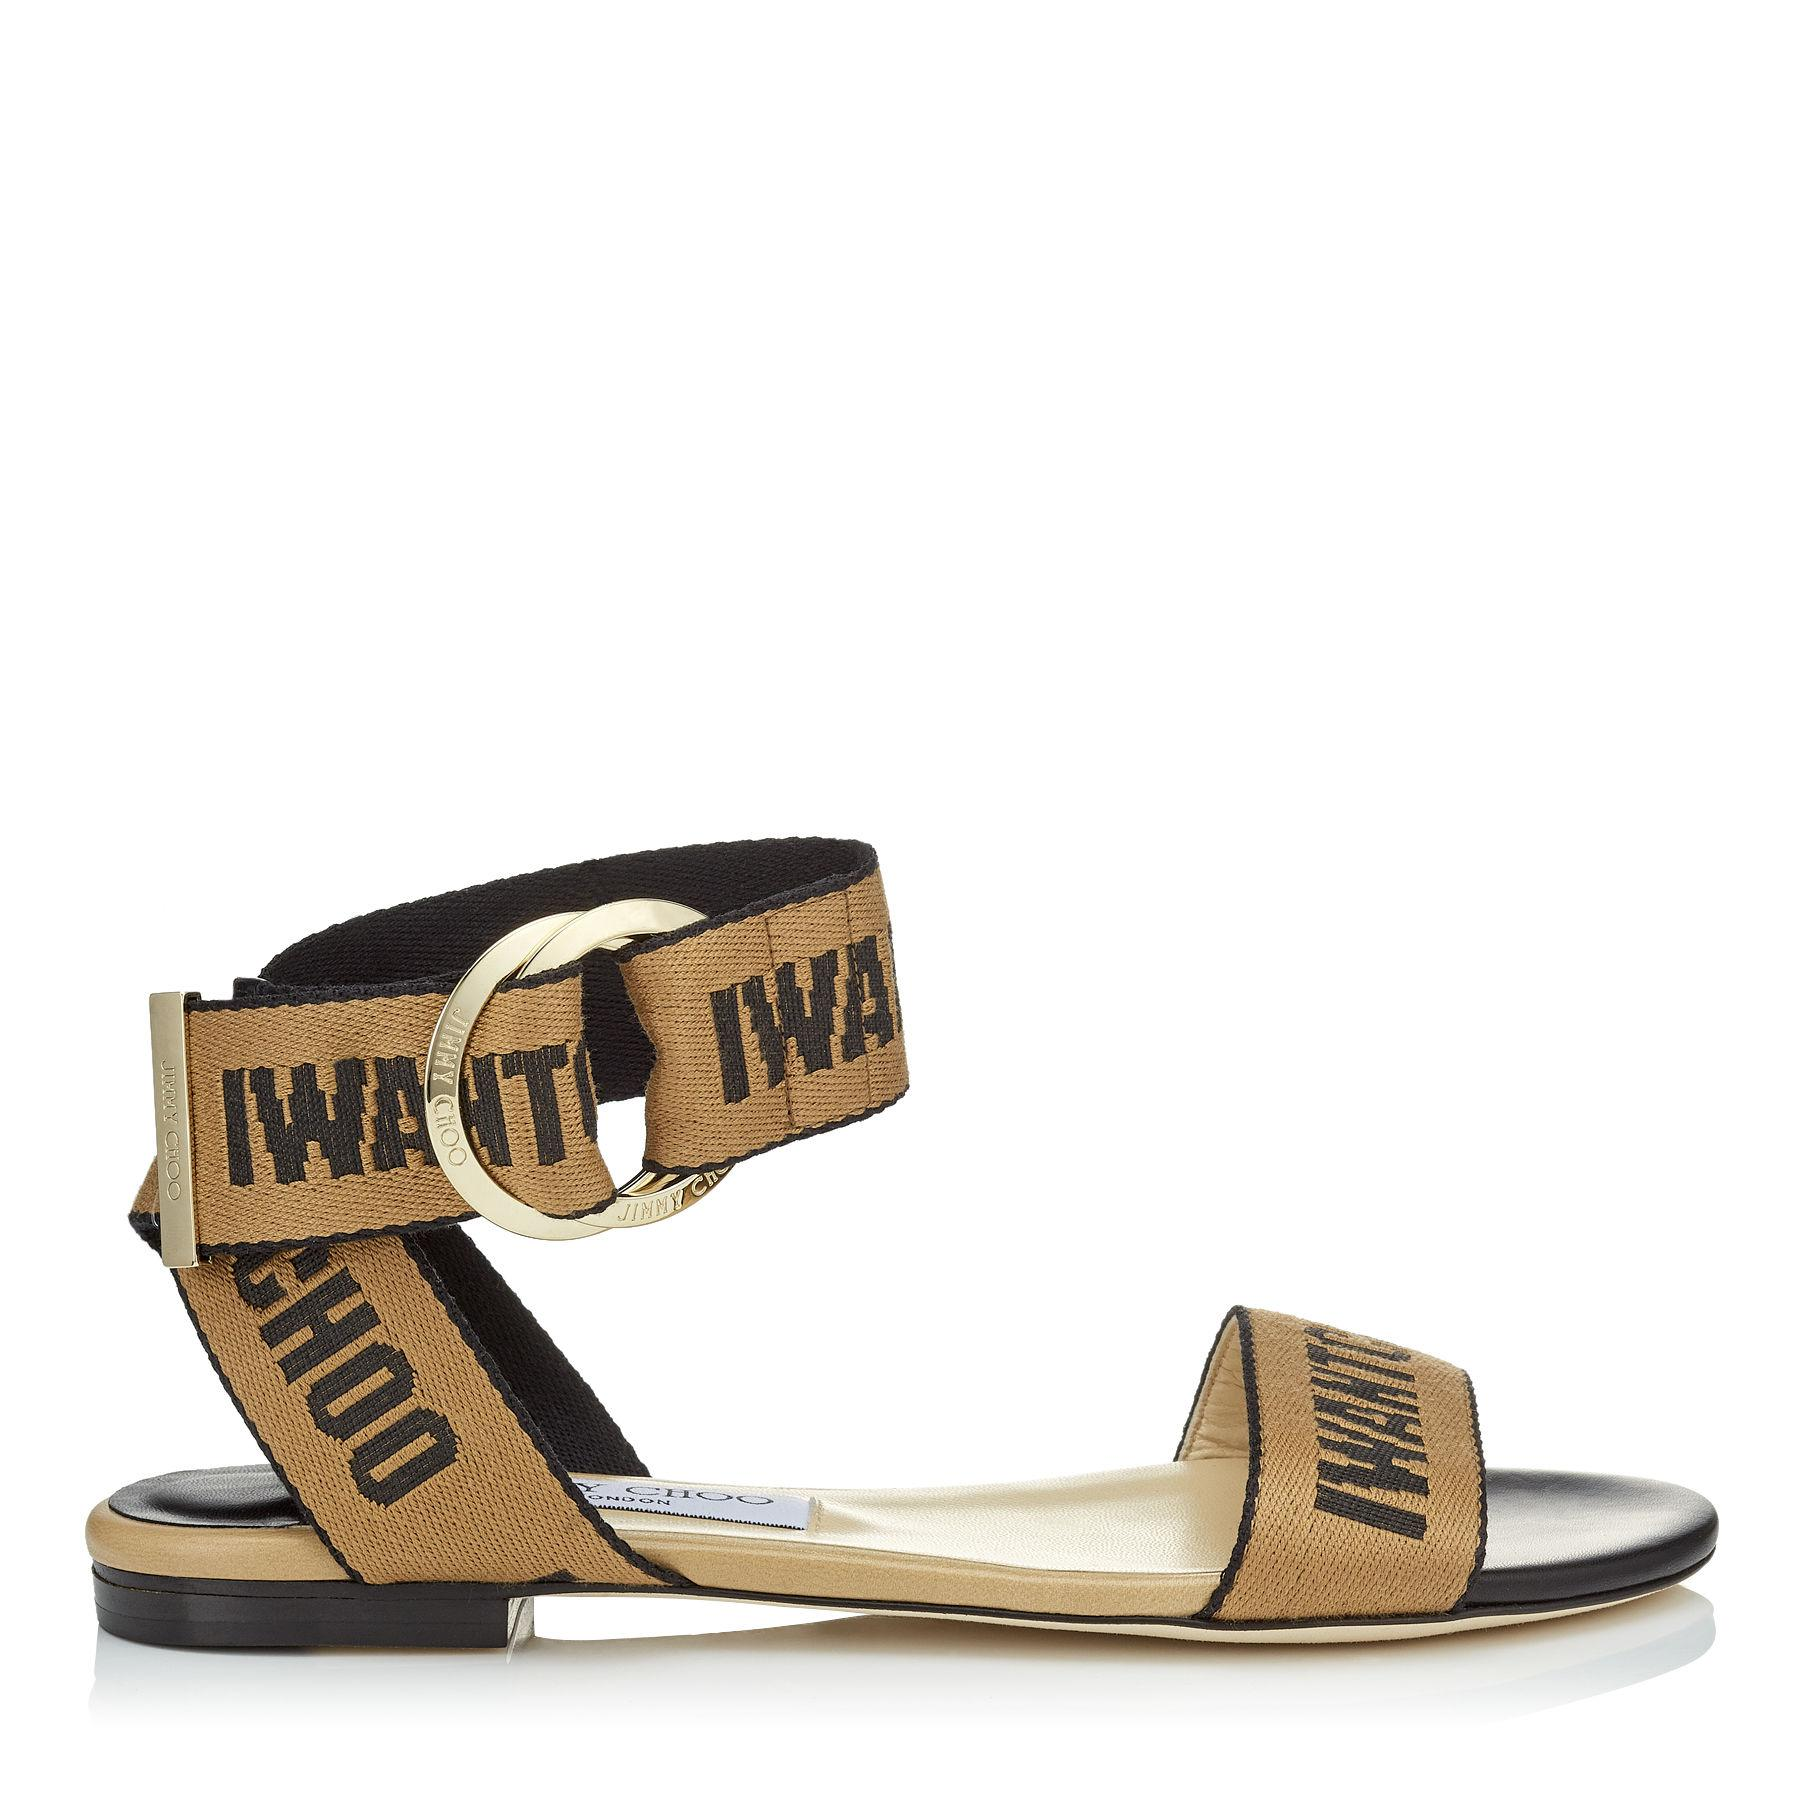 find great for sale affordable for sale Jimmy Choo Breanne flat sandals pick a best for sale free shipping clearance discount marketable UR2L3D